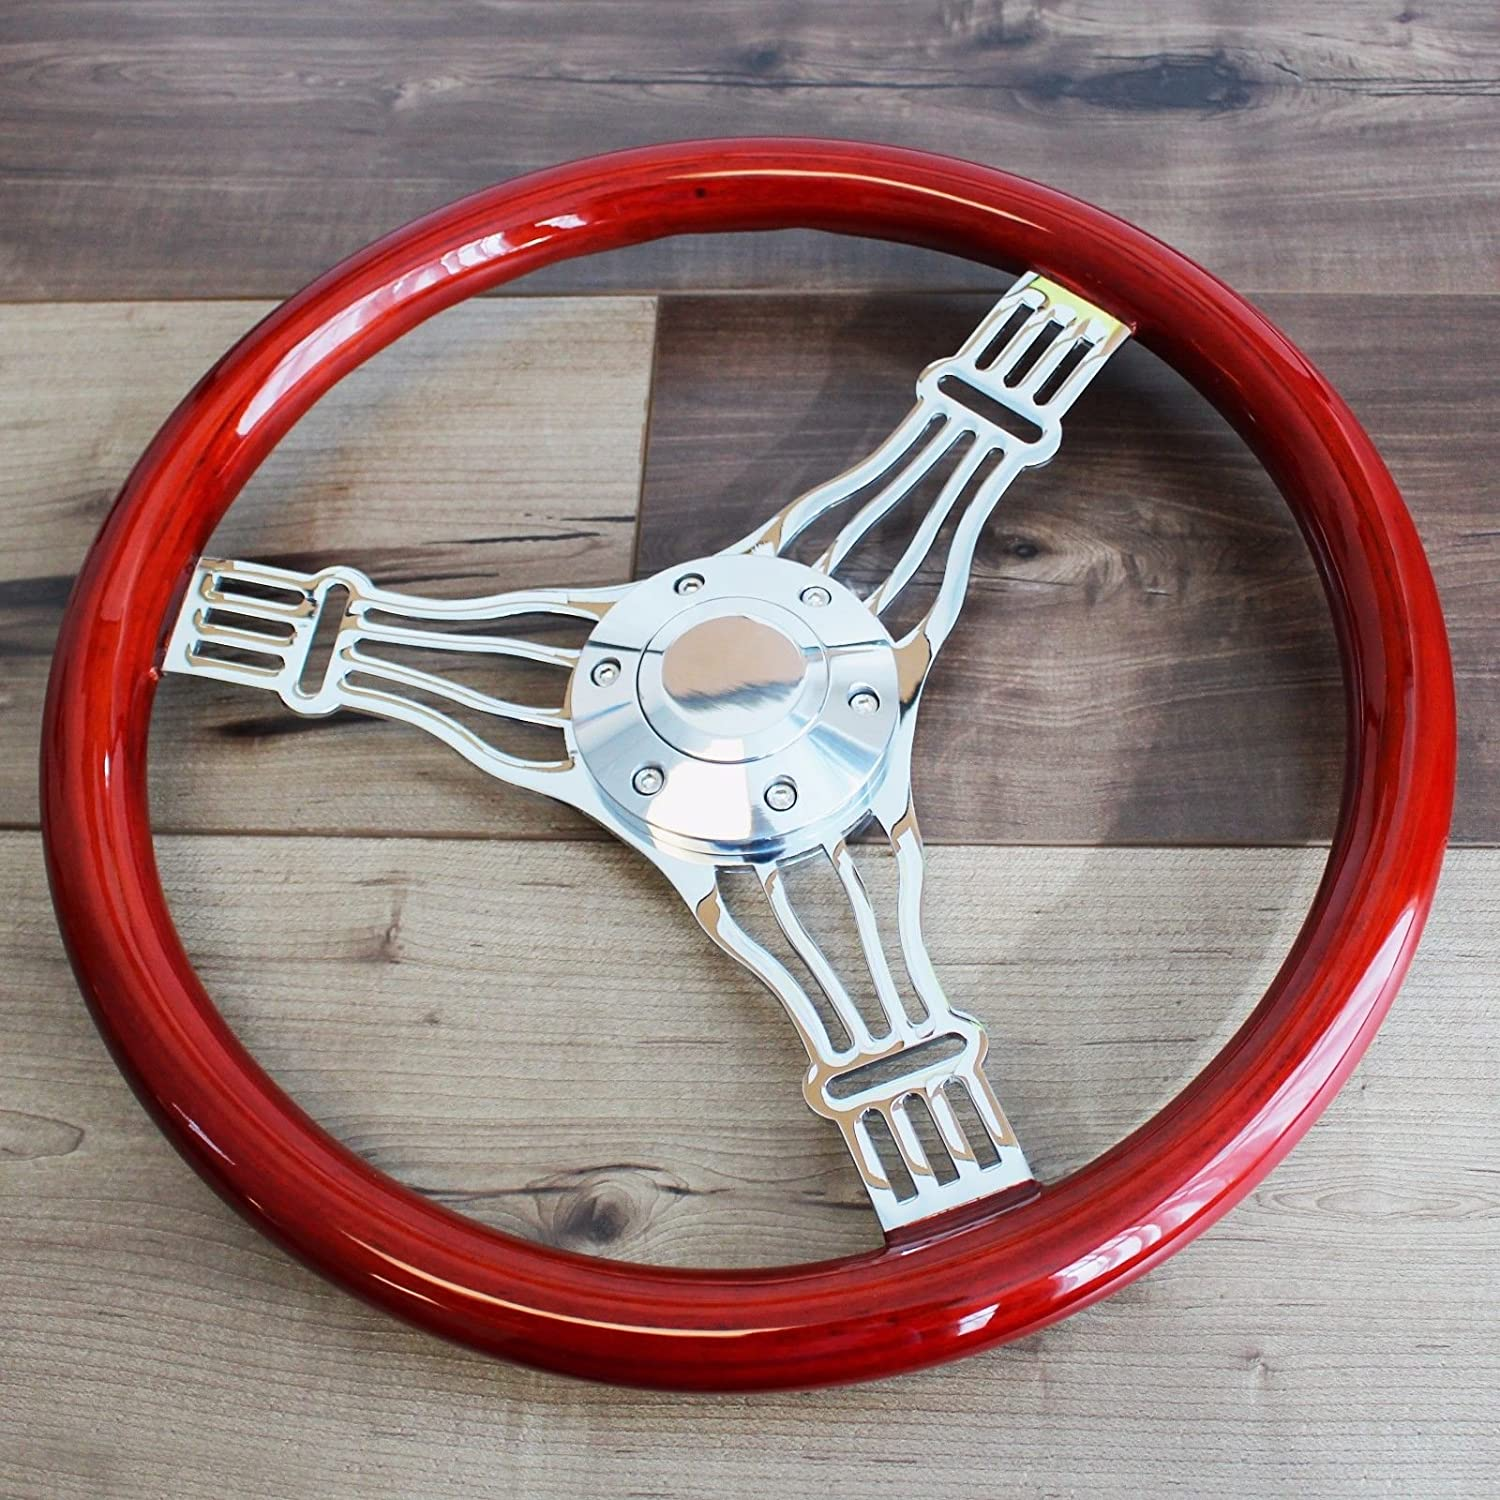 """6 Hole 380mm Chrome Steering Wheel Real Wood Wrapped in leather Grip 15/"""""""